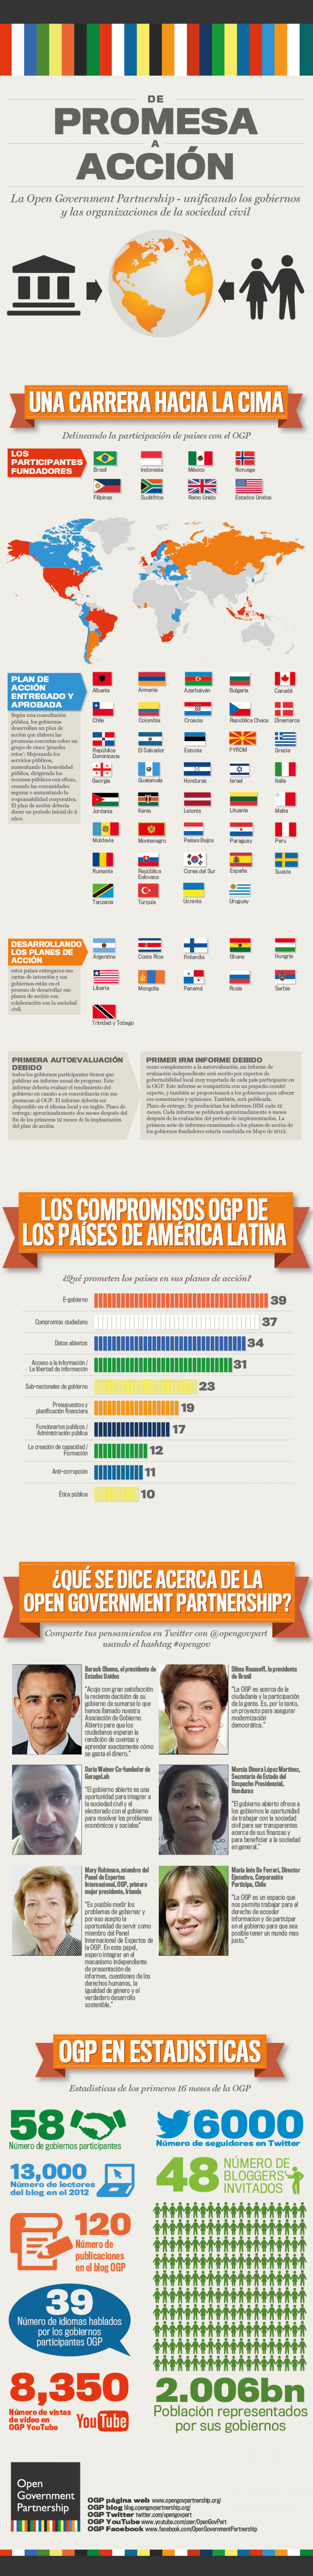 América Latina y la Open Government Partnership Infographic